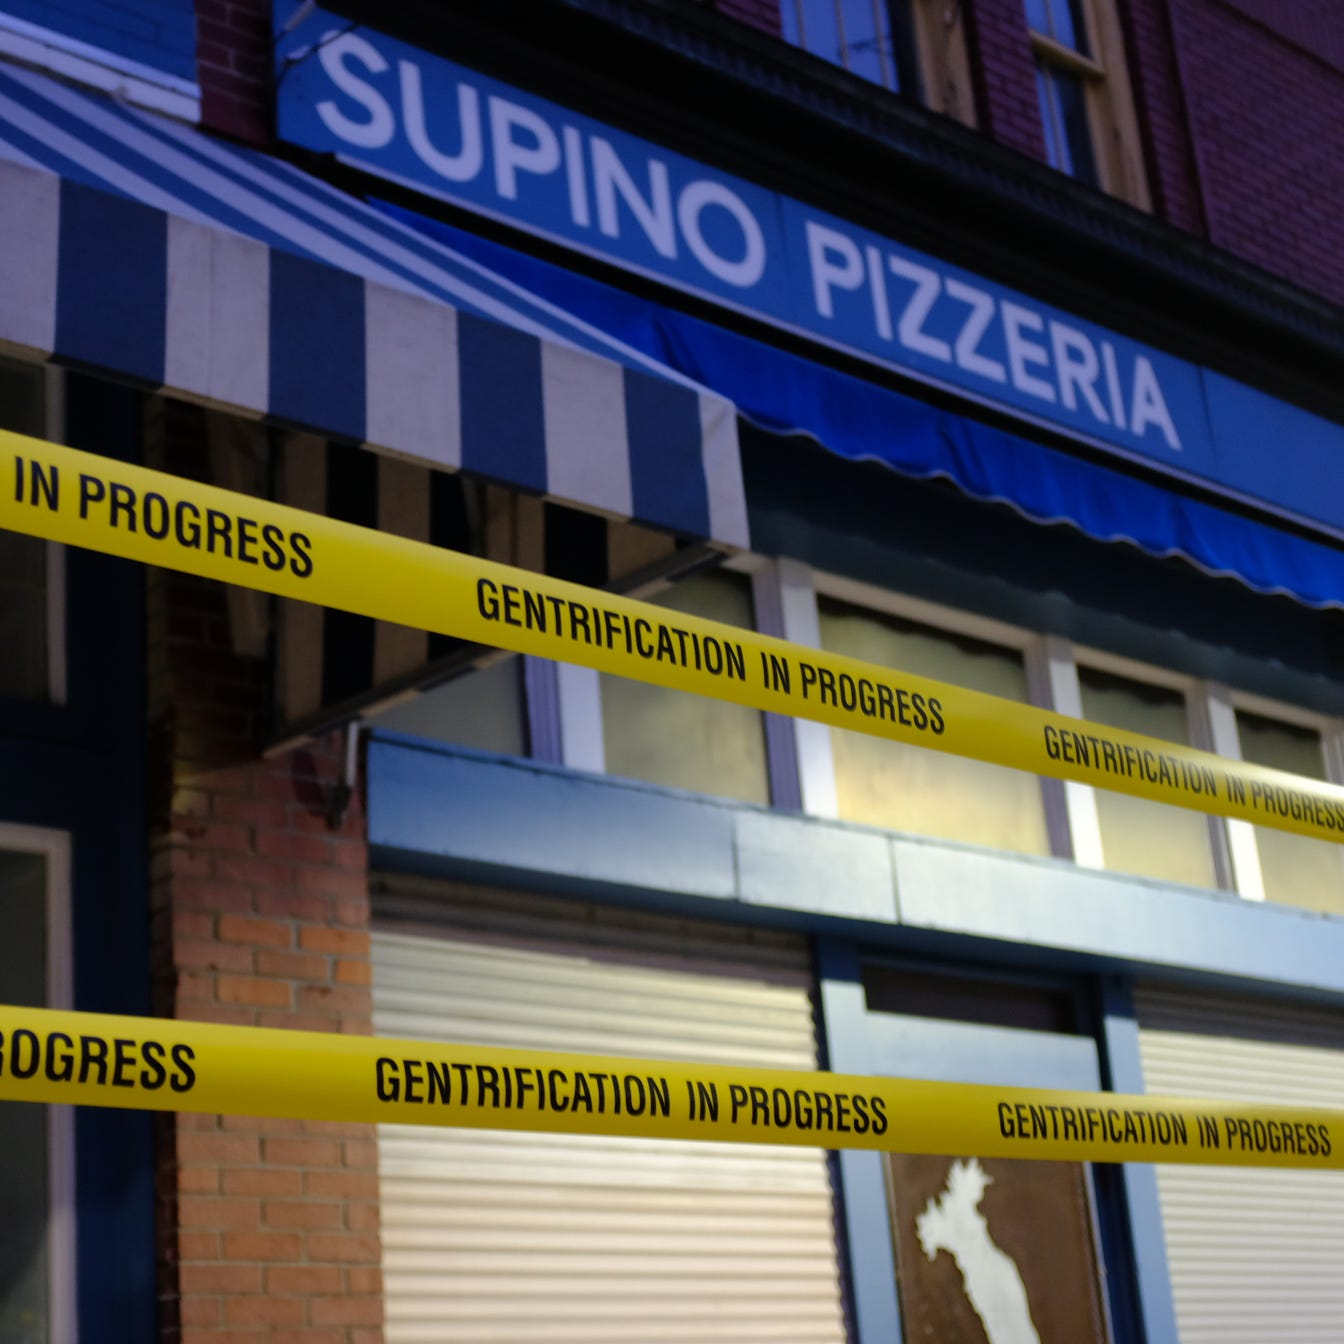 Eastern Market's Supino, Russell Street hit with 'gentrification in progress' protest art